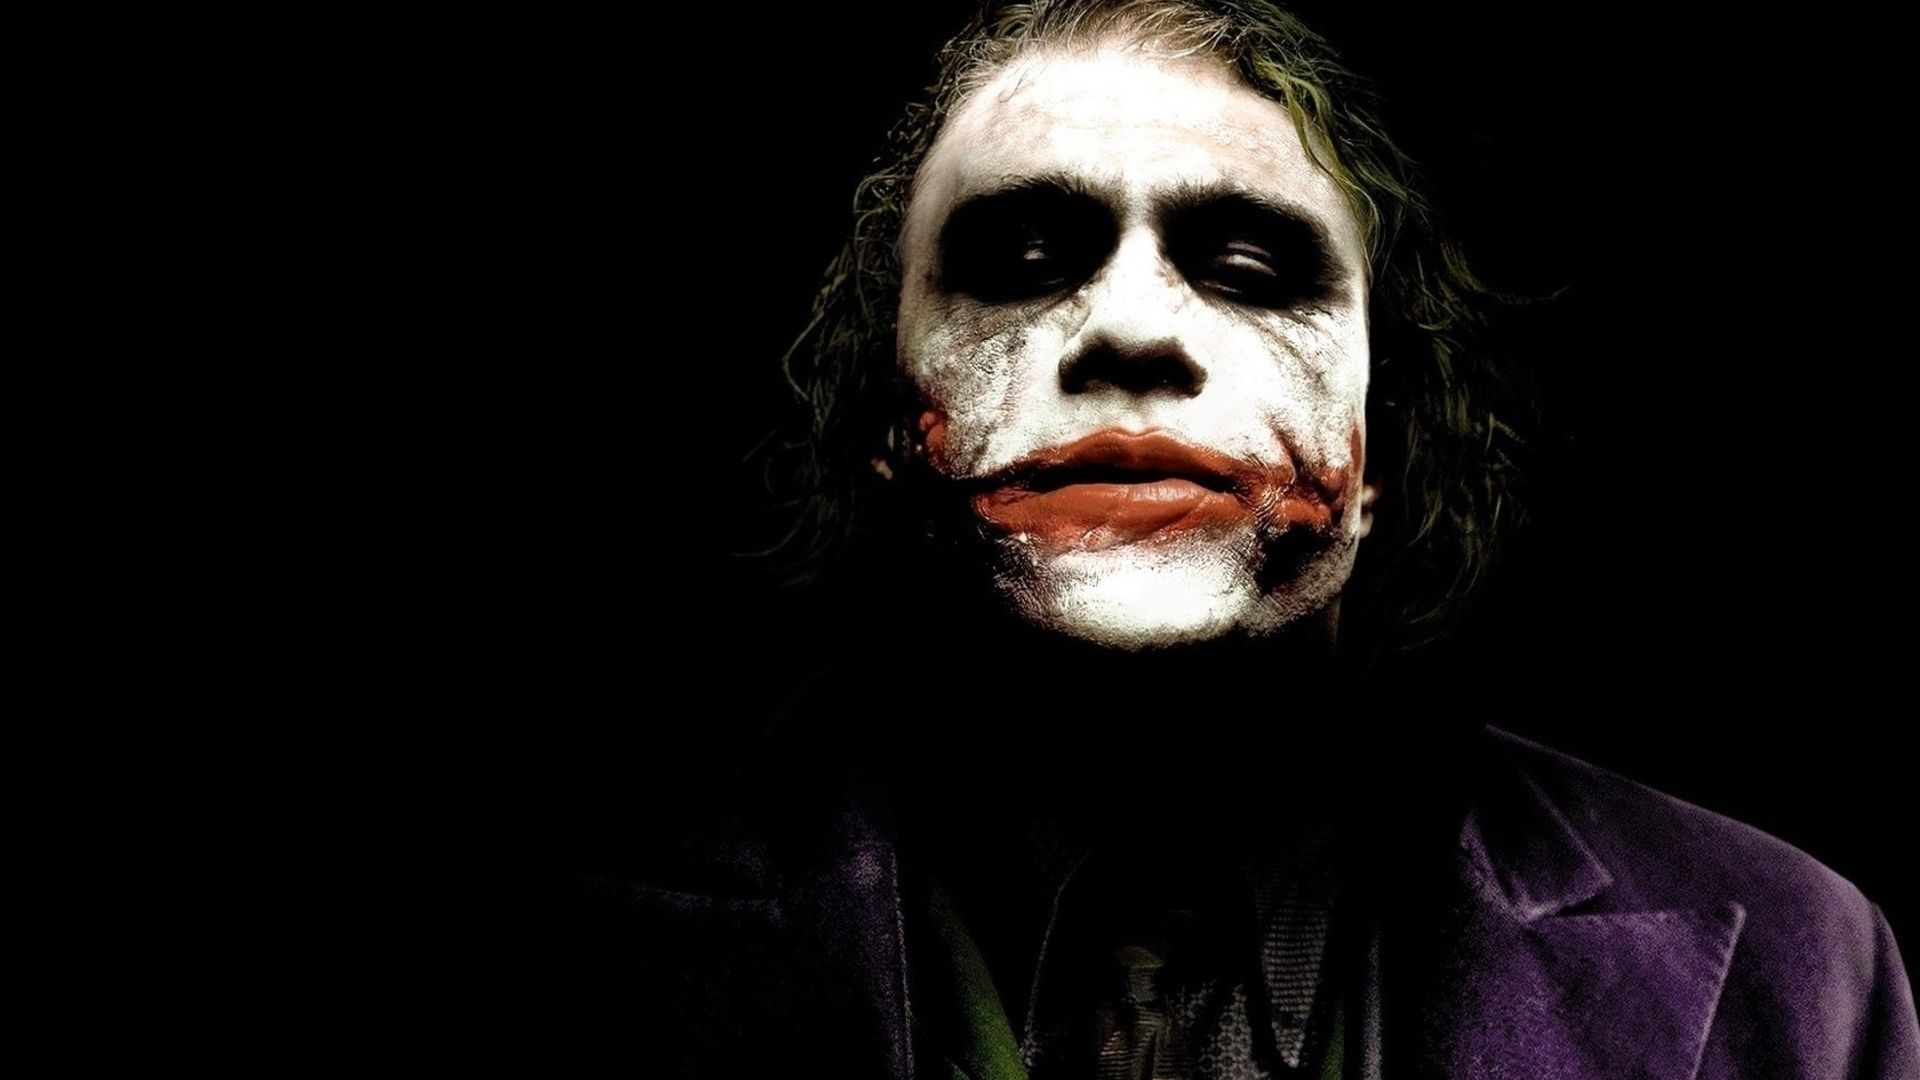 10 New Heath Ledger Joker Wallpapers FULL HD 1080p For PC Background